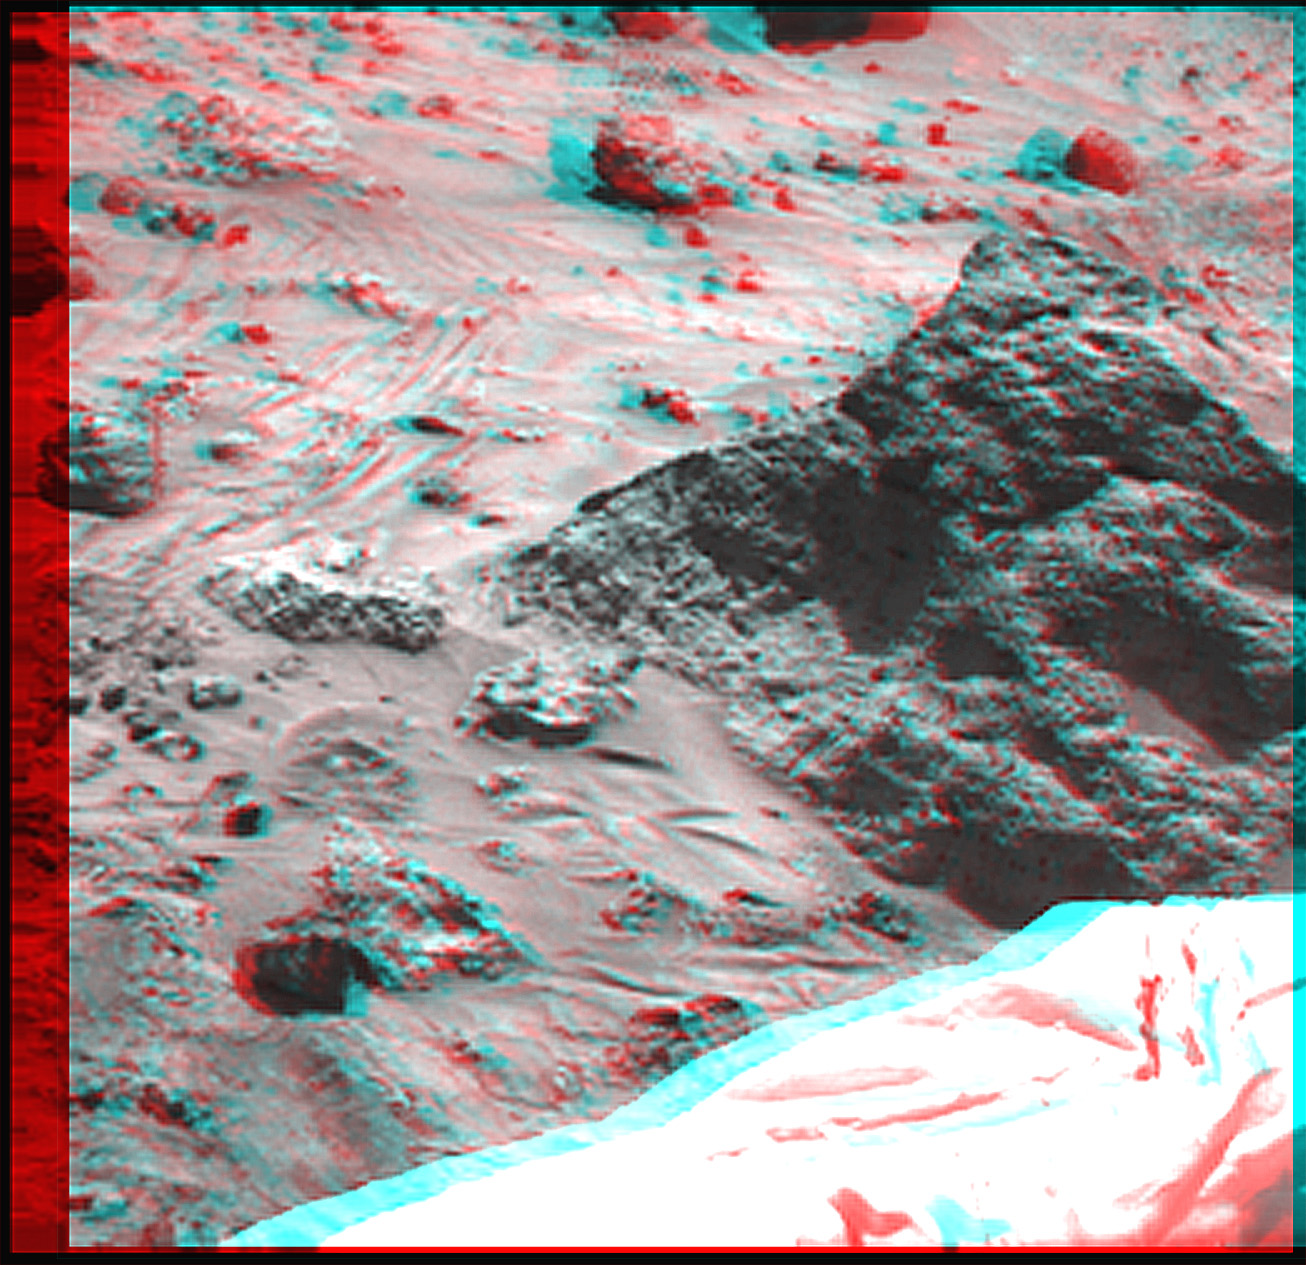 red-cyan anaglyph of martian landscape